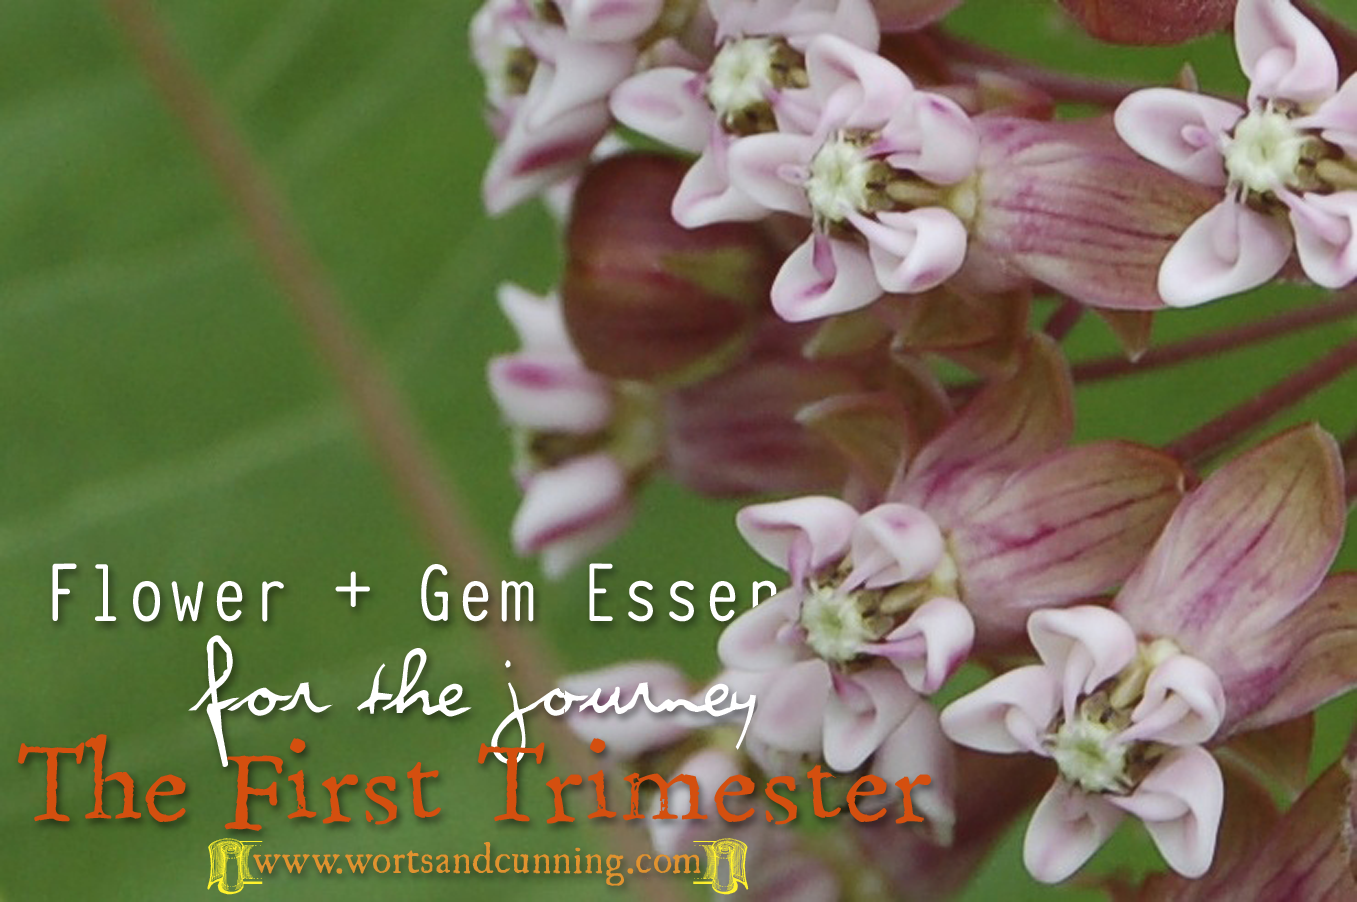 First Trimester Flower Gem Essences